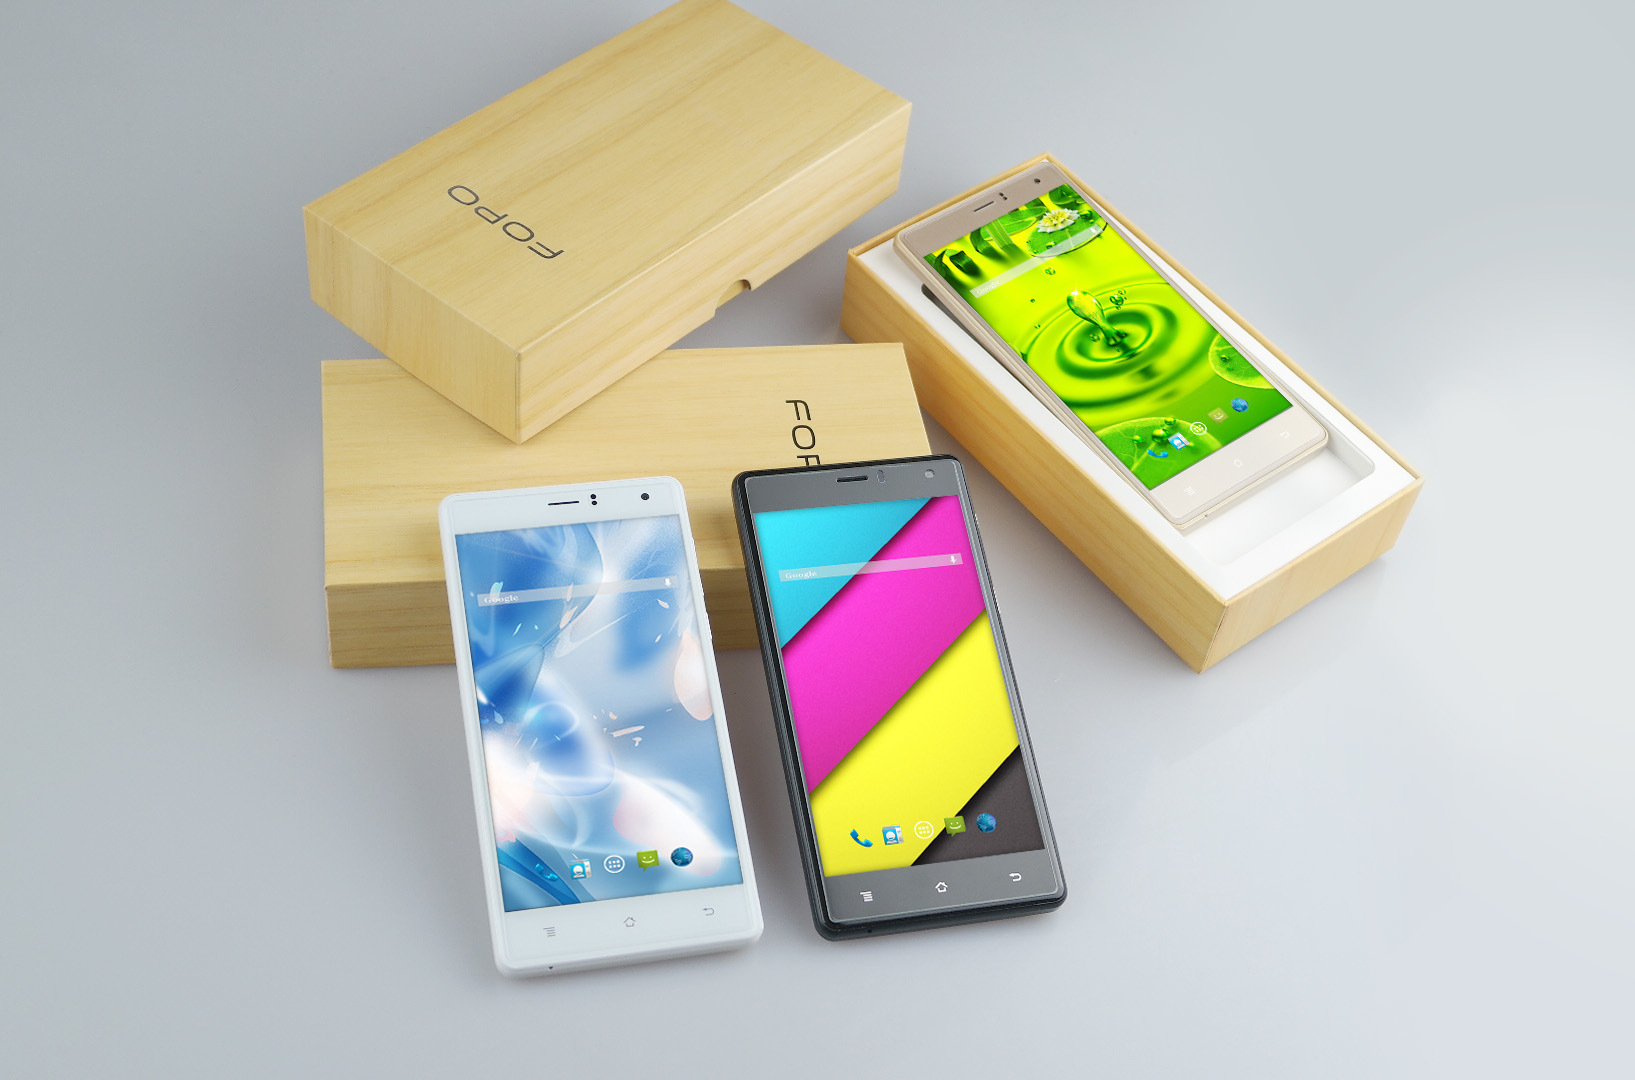 5.5inch Mtk6580 Quad-Core 1.2GHz 720X1280 IPS Screen Android 5.1 3G OEM Smartphone